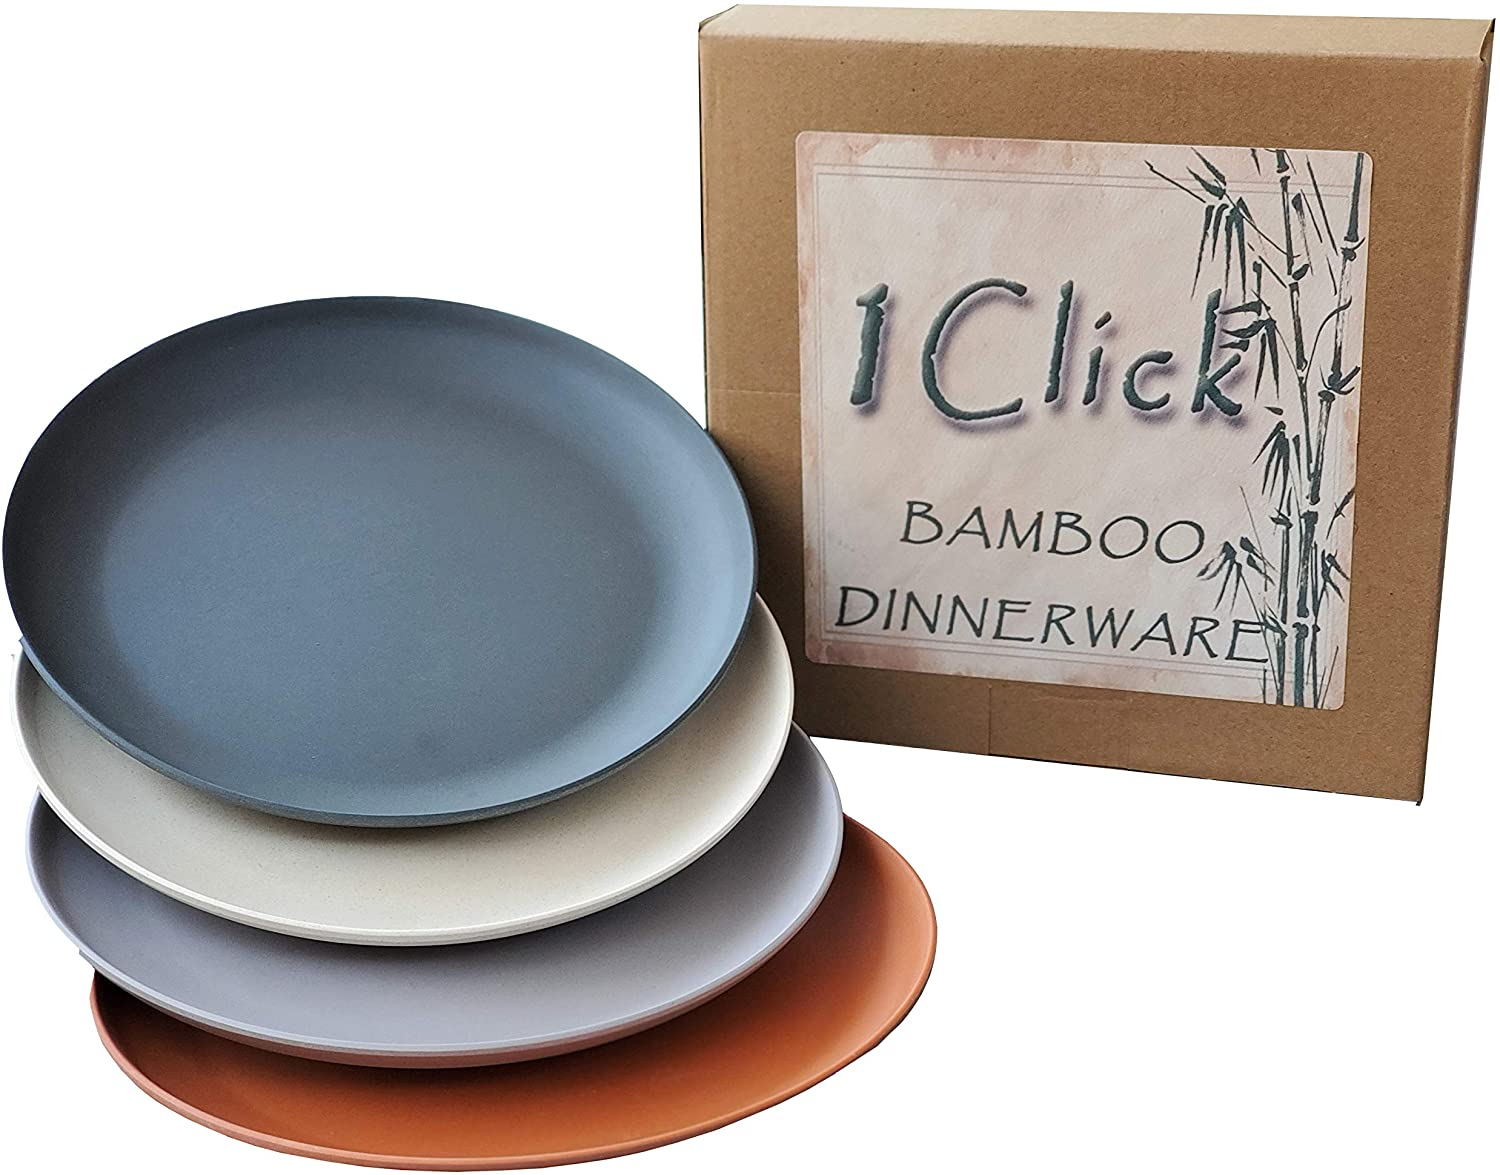 1 Click Bamboo Fiber Salad/Dessert Plates, Set of 4, Multicolor, Modern Bamboo Dinnerware, for Indoor and Outdoor events